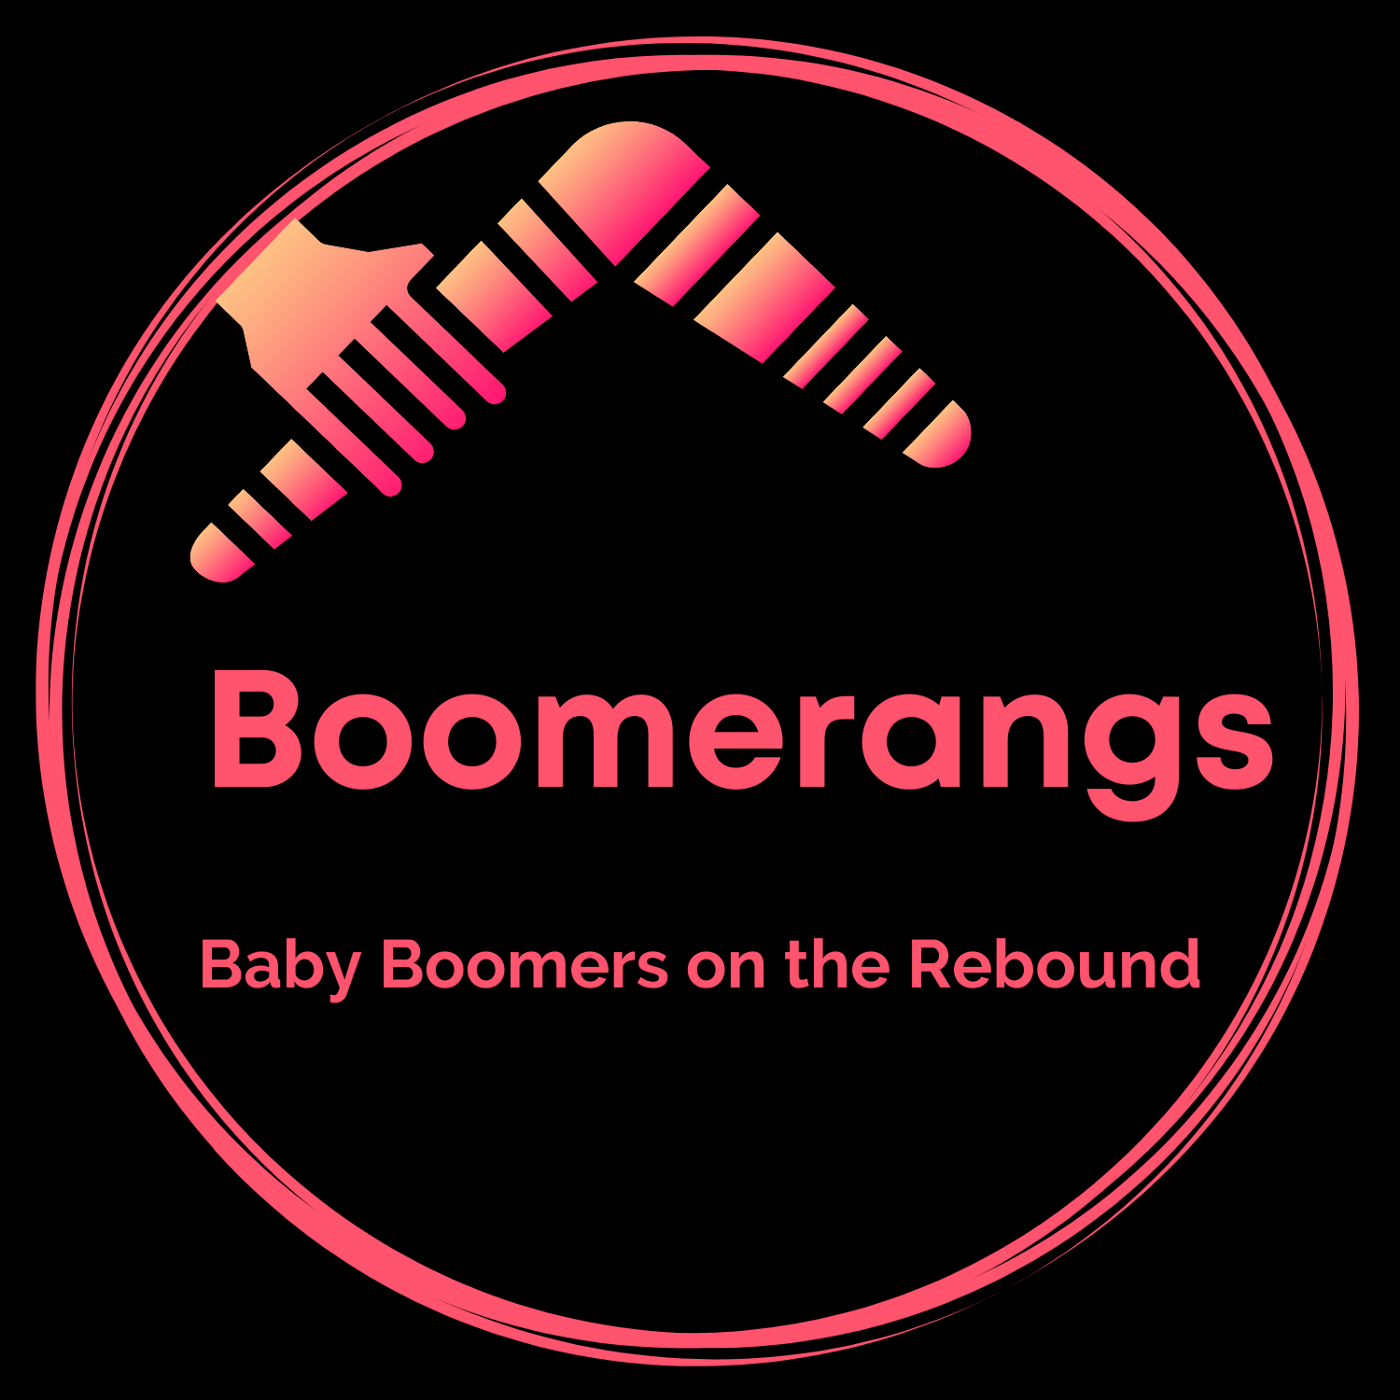 Logo for new publication — black background with watermelon pink lettering — Boomerangs — Baby Boomers on the rebound.